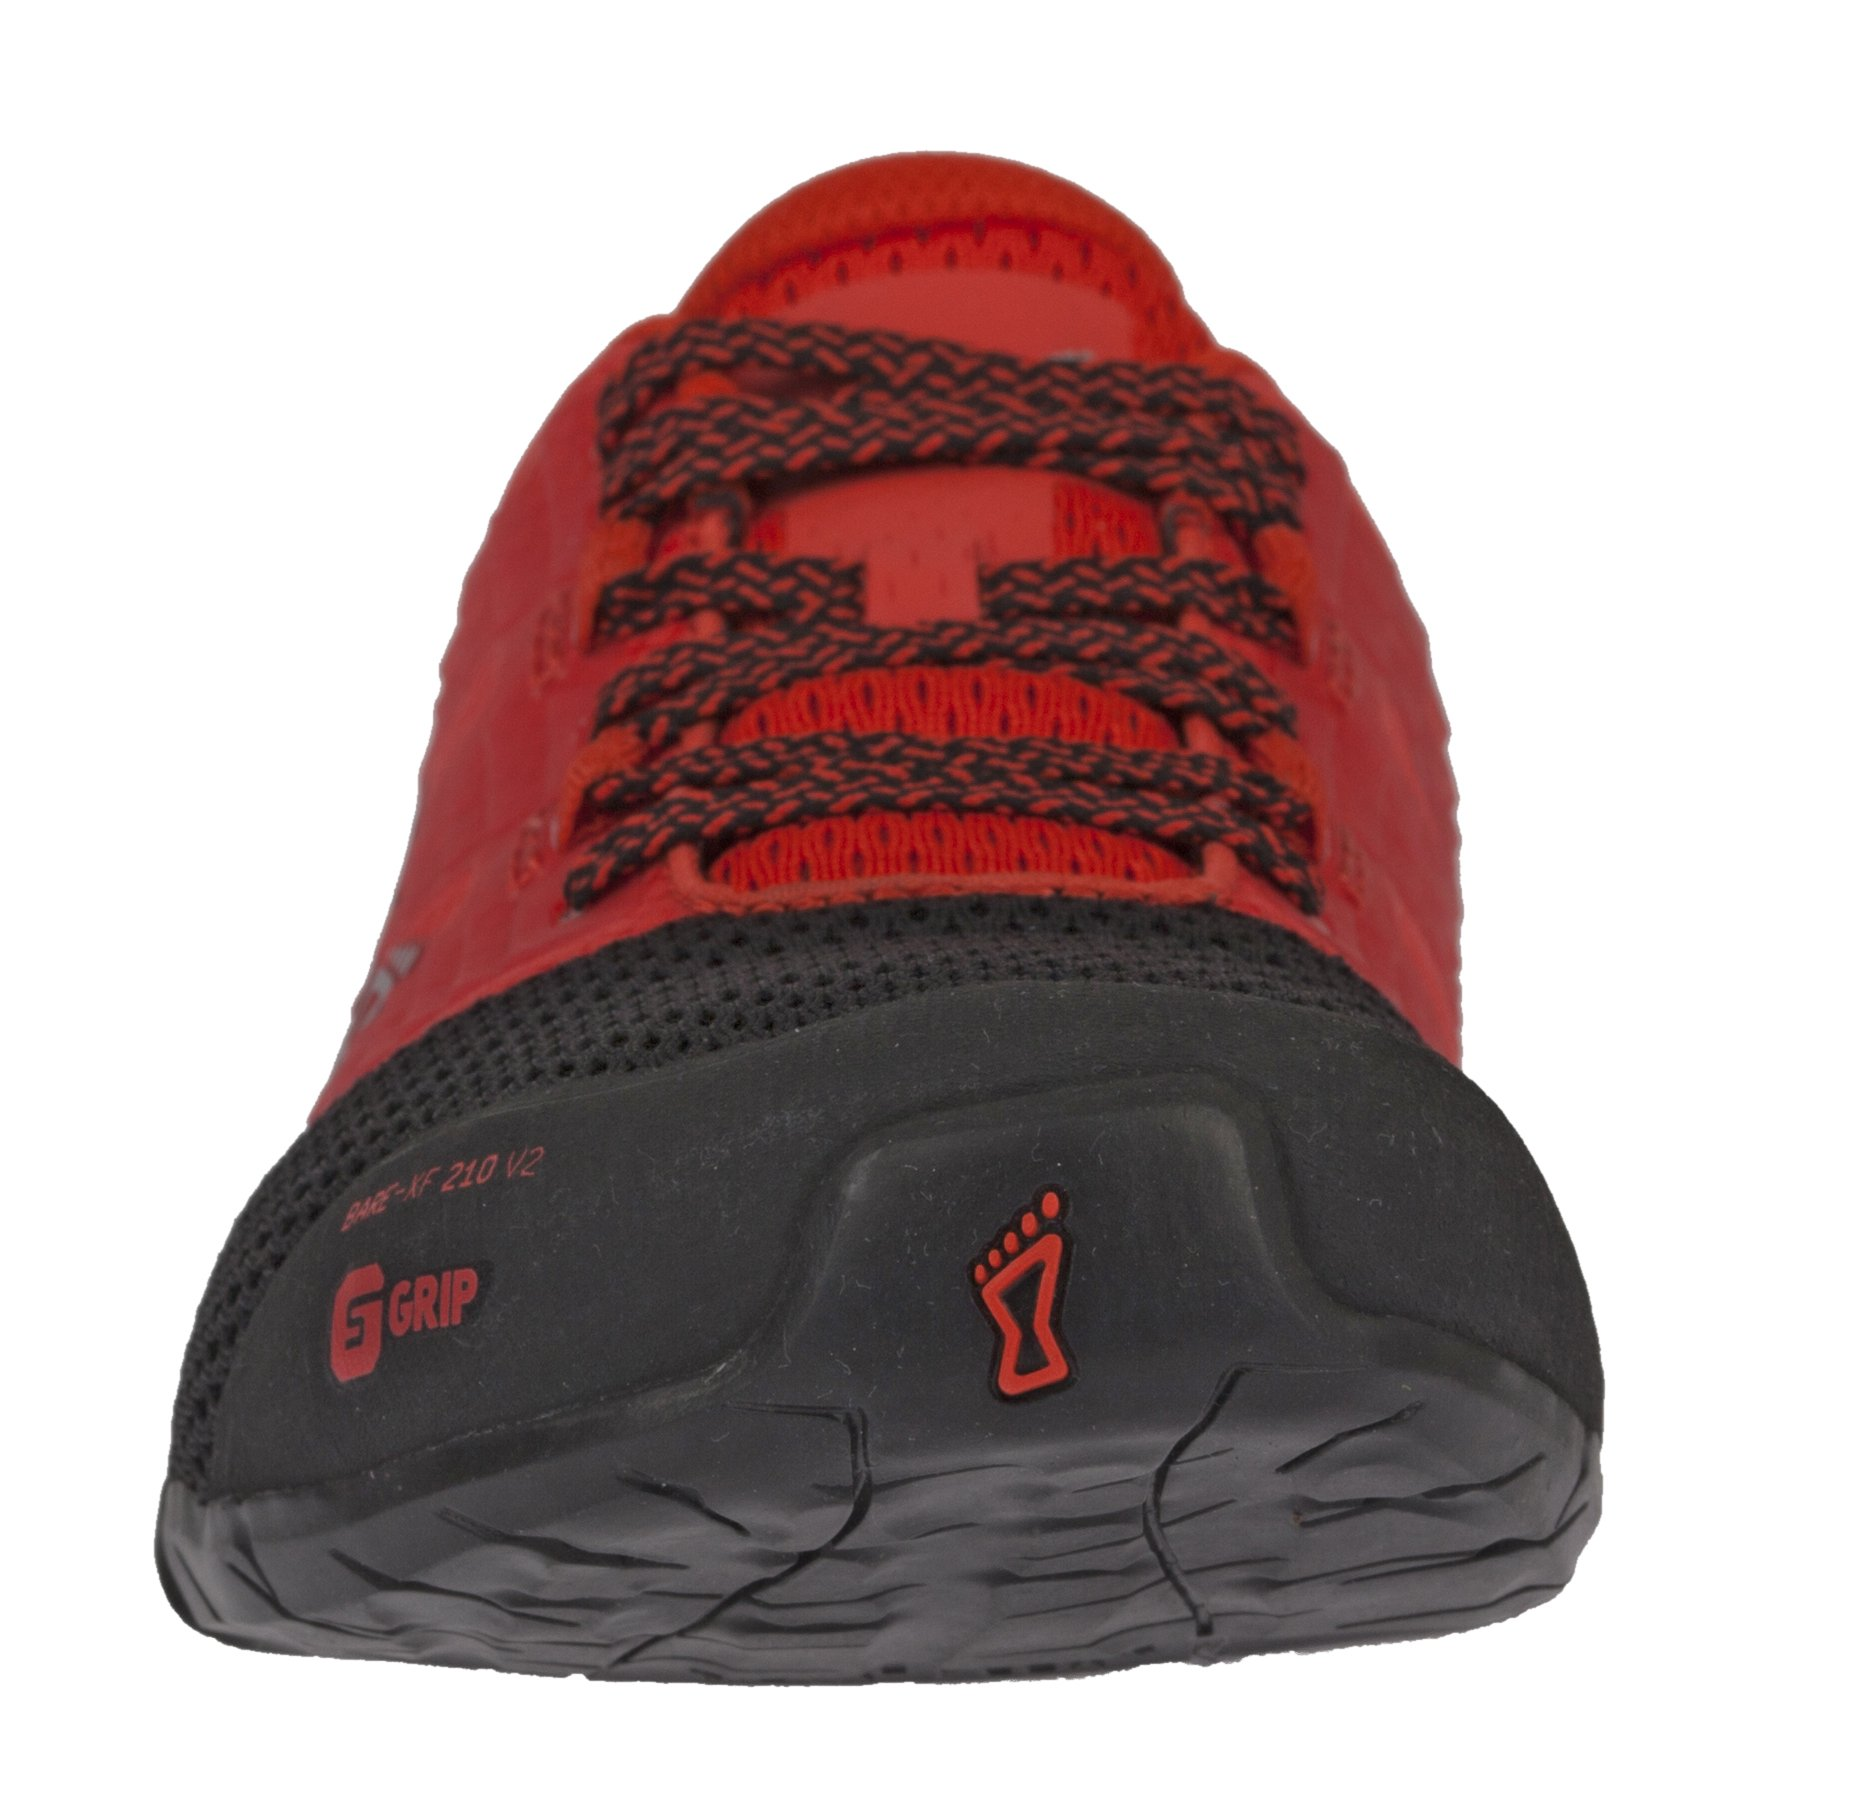 Inov-8 Mens Bare-XF 210 V2 - Barefoot Minimalist Cross Training Shoes - Zero Drop - Wide Toe Box - Versatile Shoe for Powerlifting & Gym - Calisthenics & Martial Arts - Black/Red 8 M US by Inov-8 (Image #7)